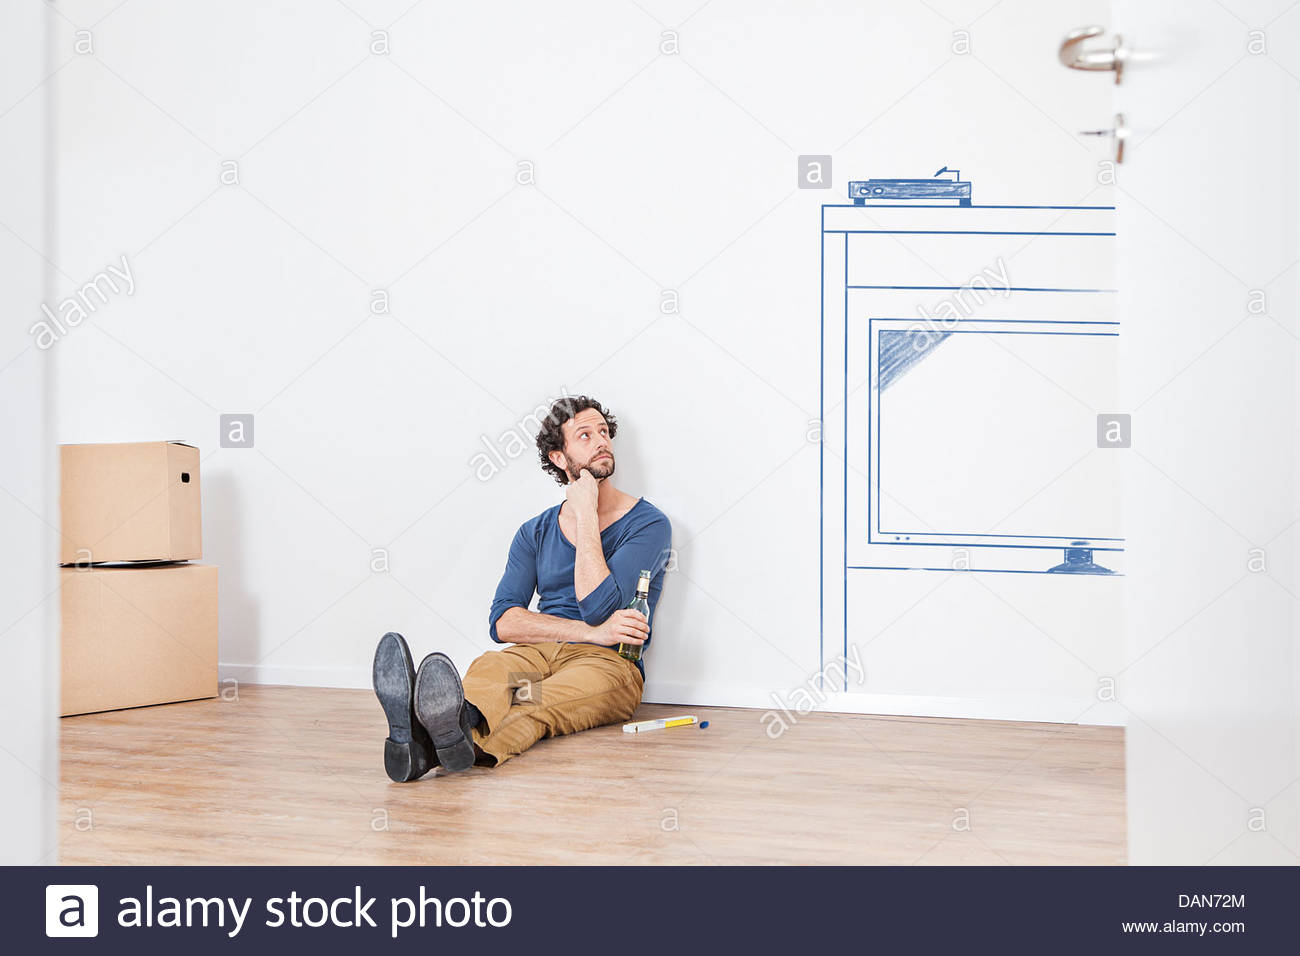 Man thinking about furnishing new living room Stock Photo